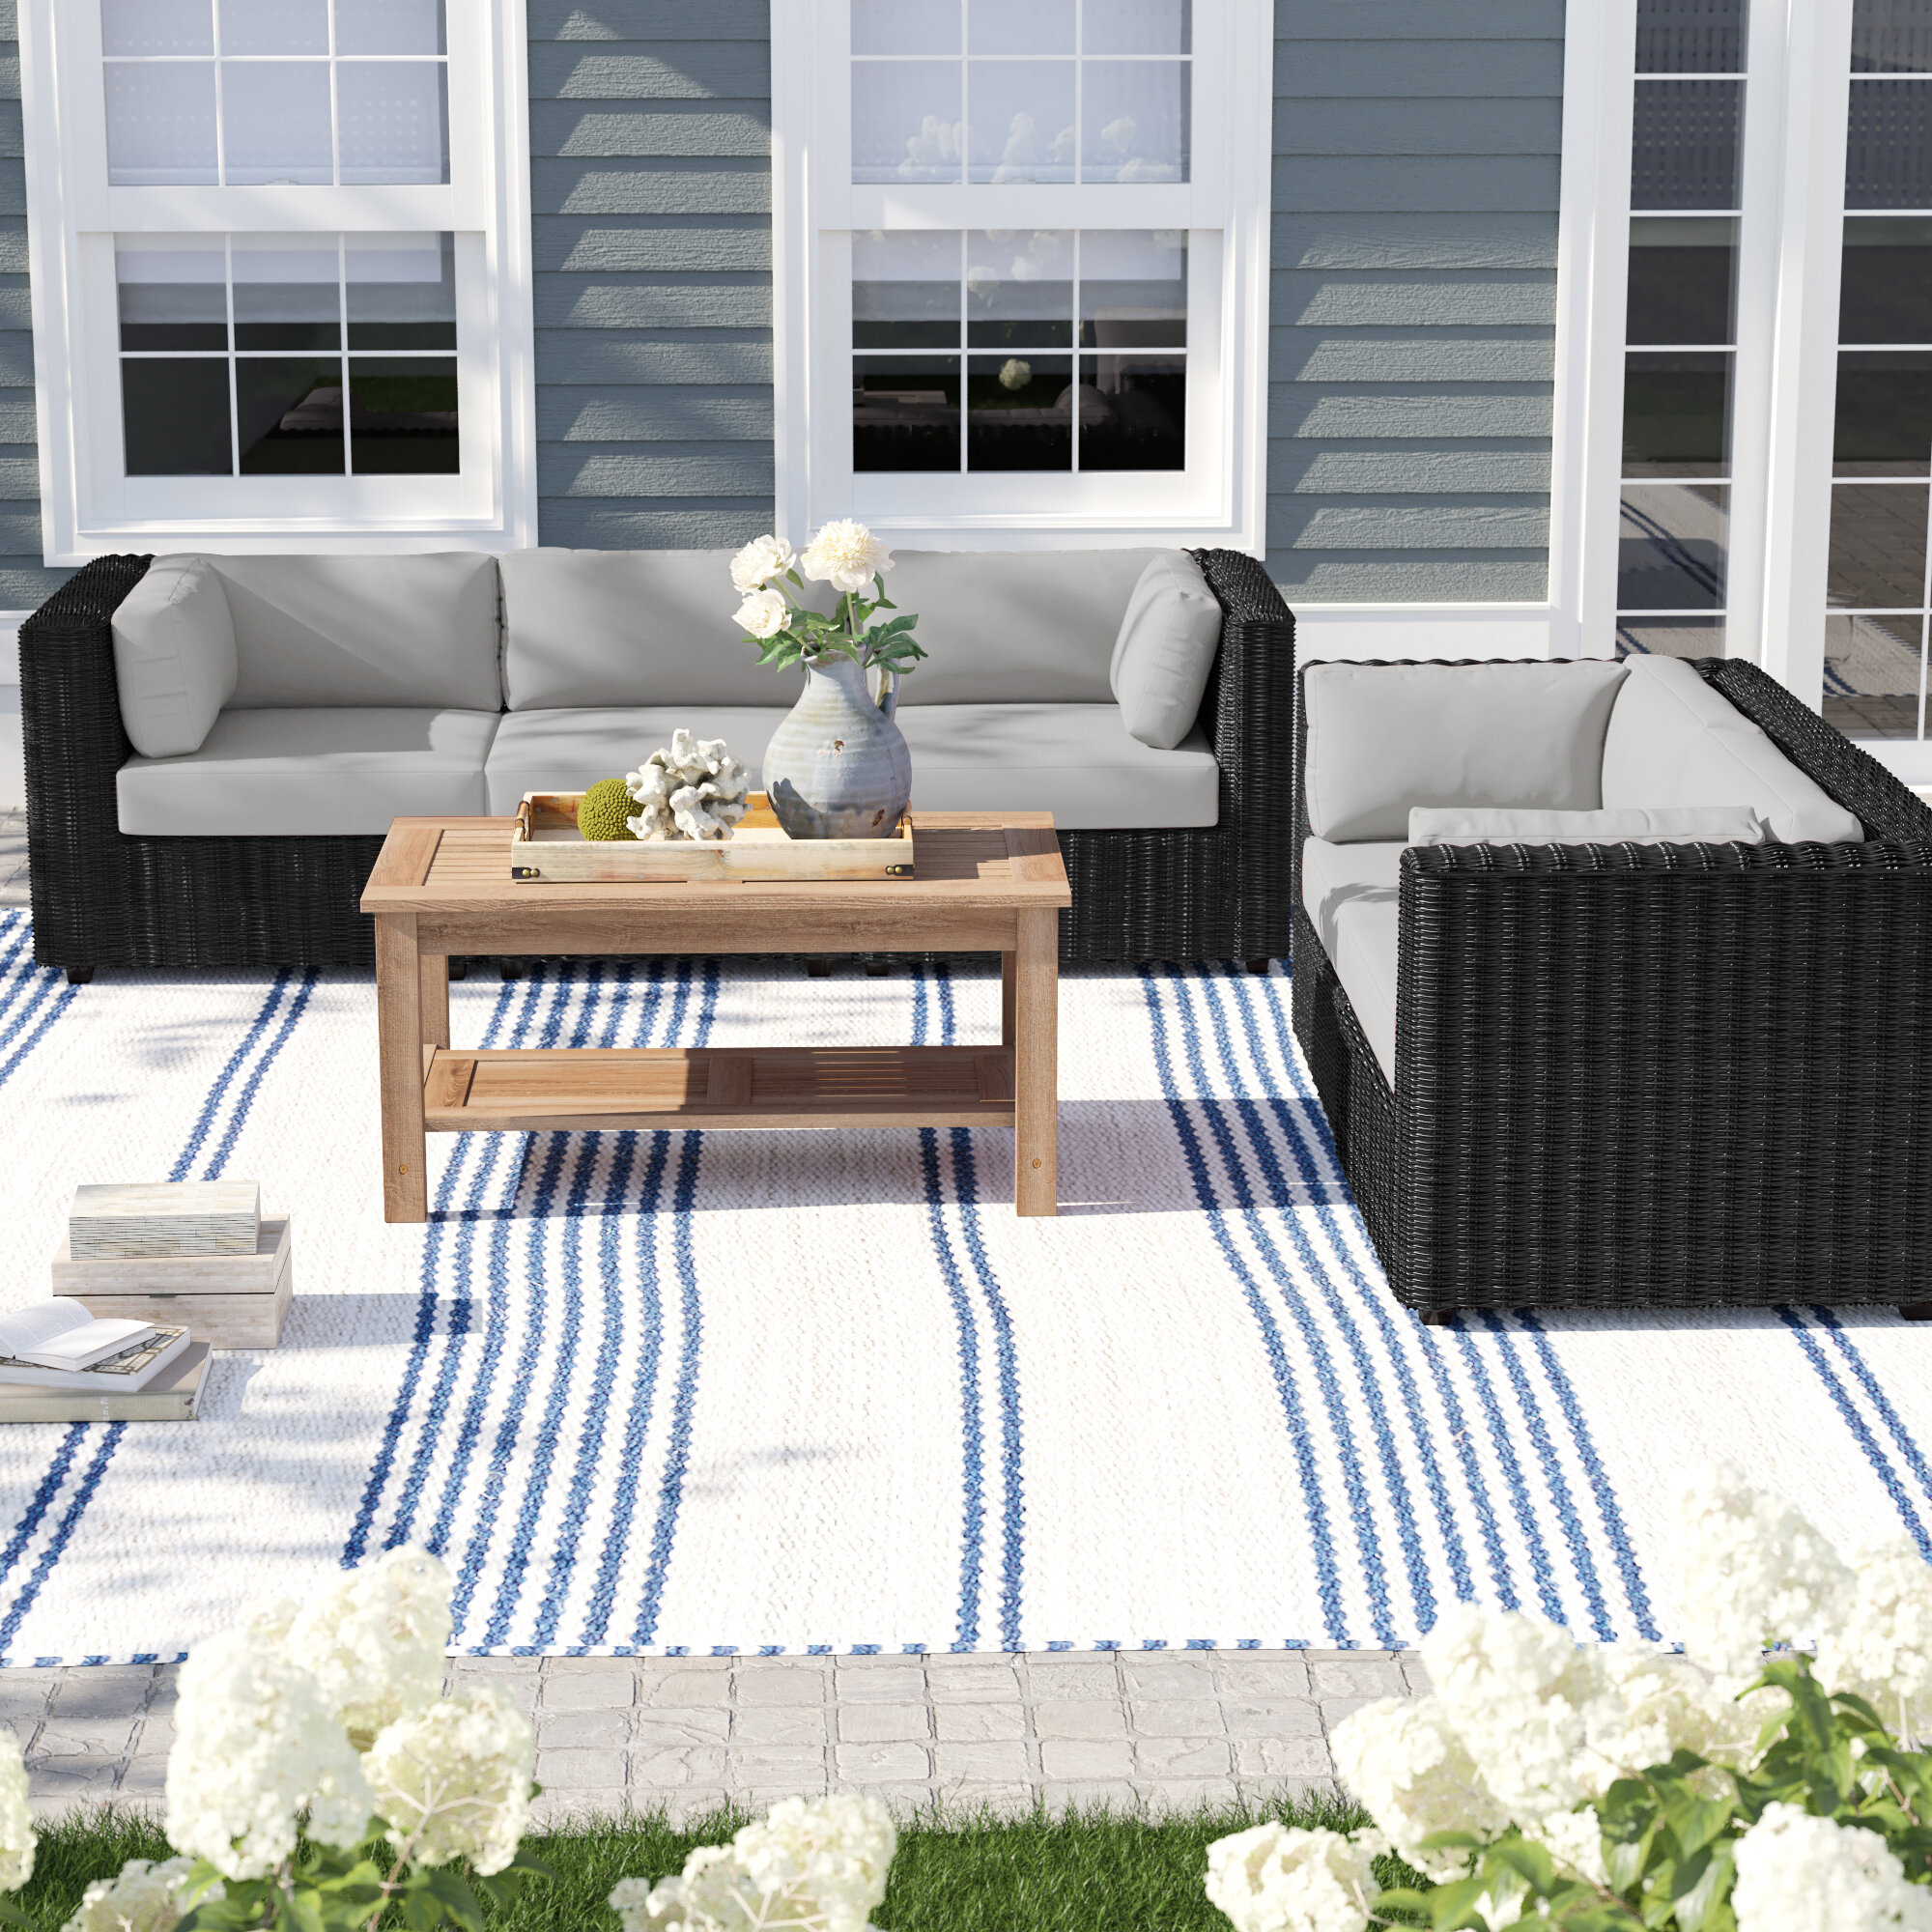 Olathe 5 Piece Rattan Sectional Seating Group With Cushions Birch Lane